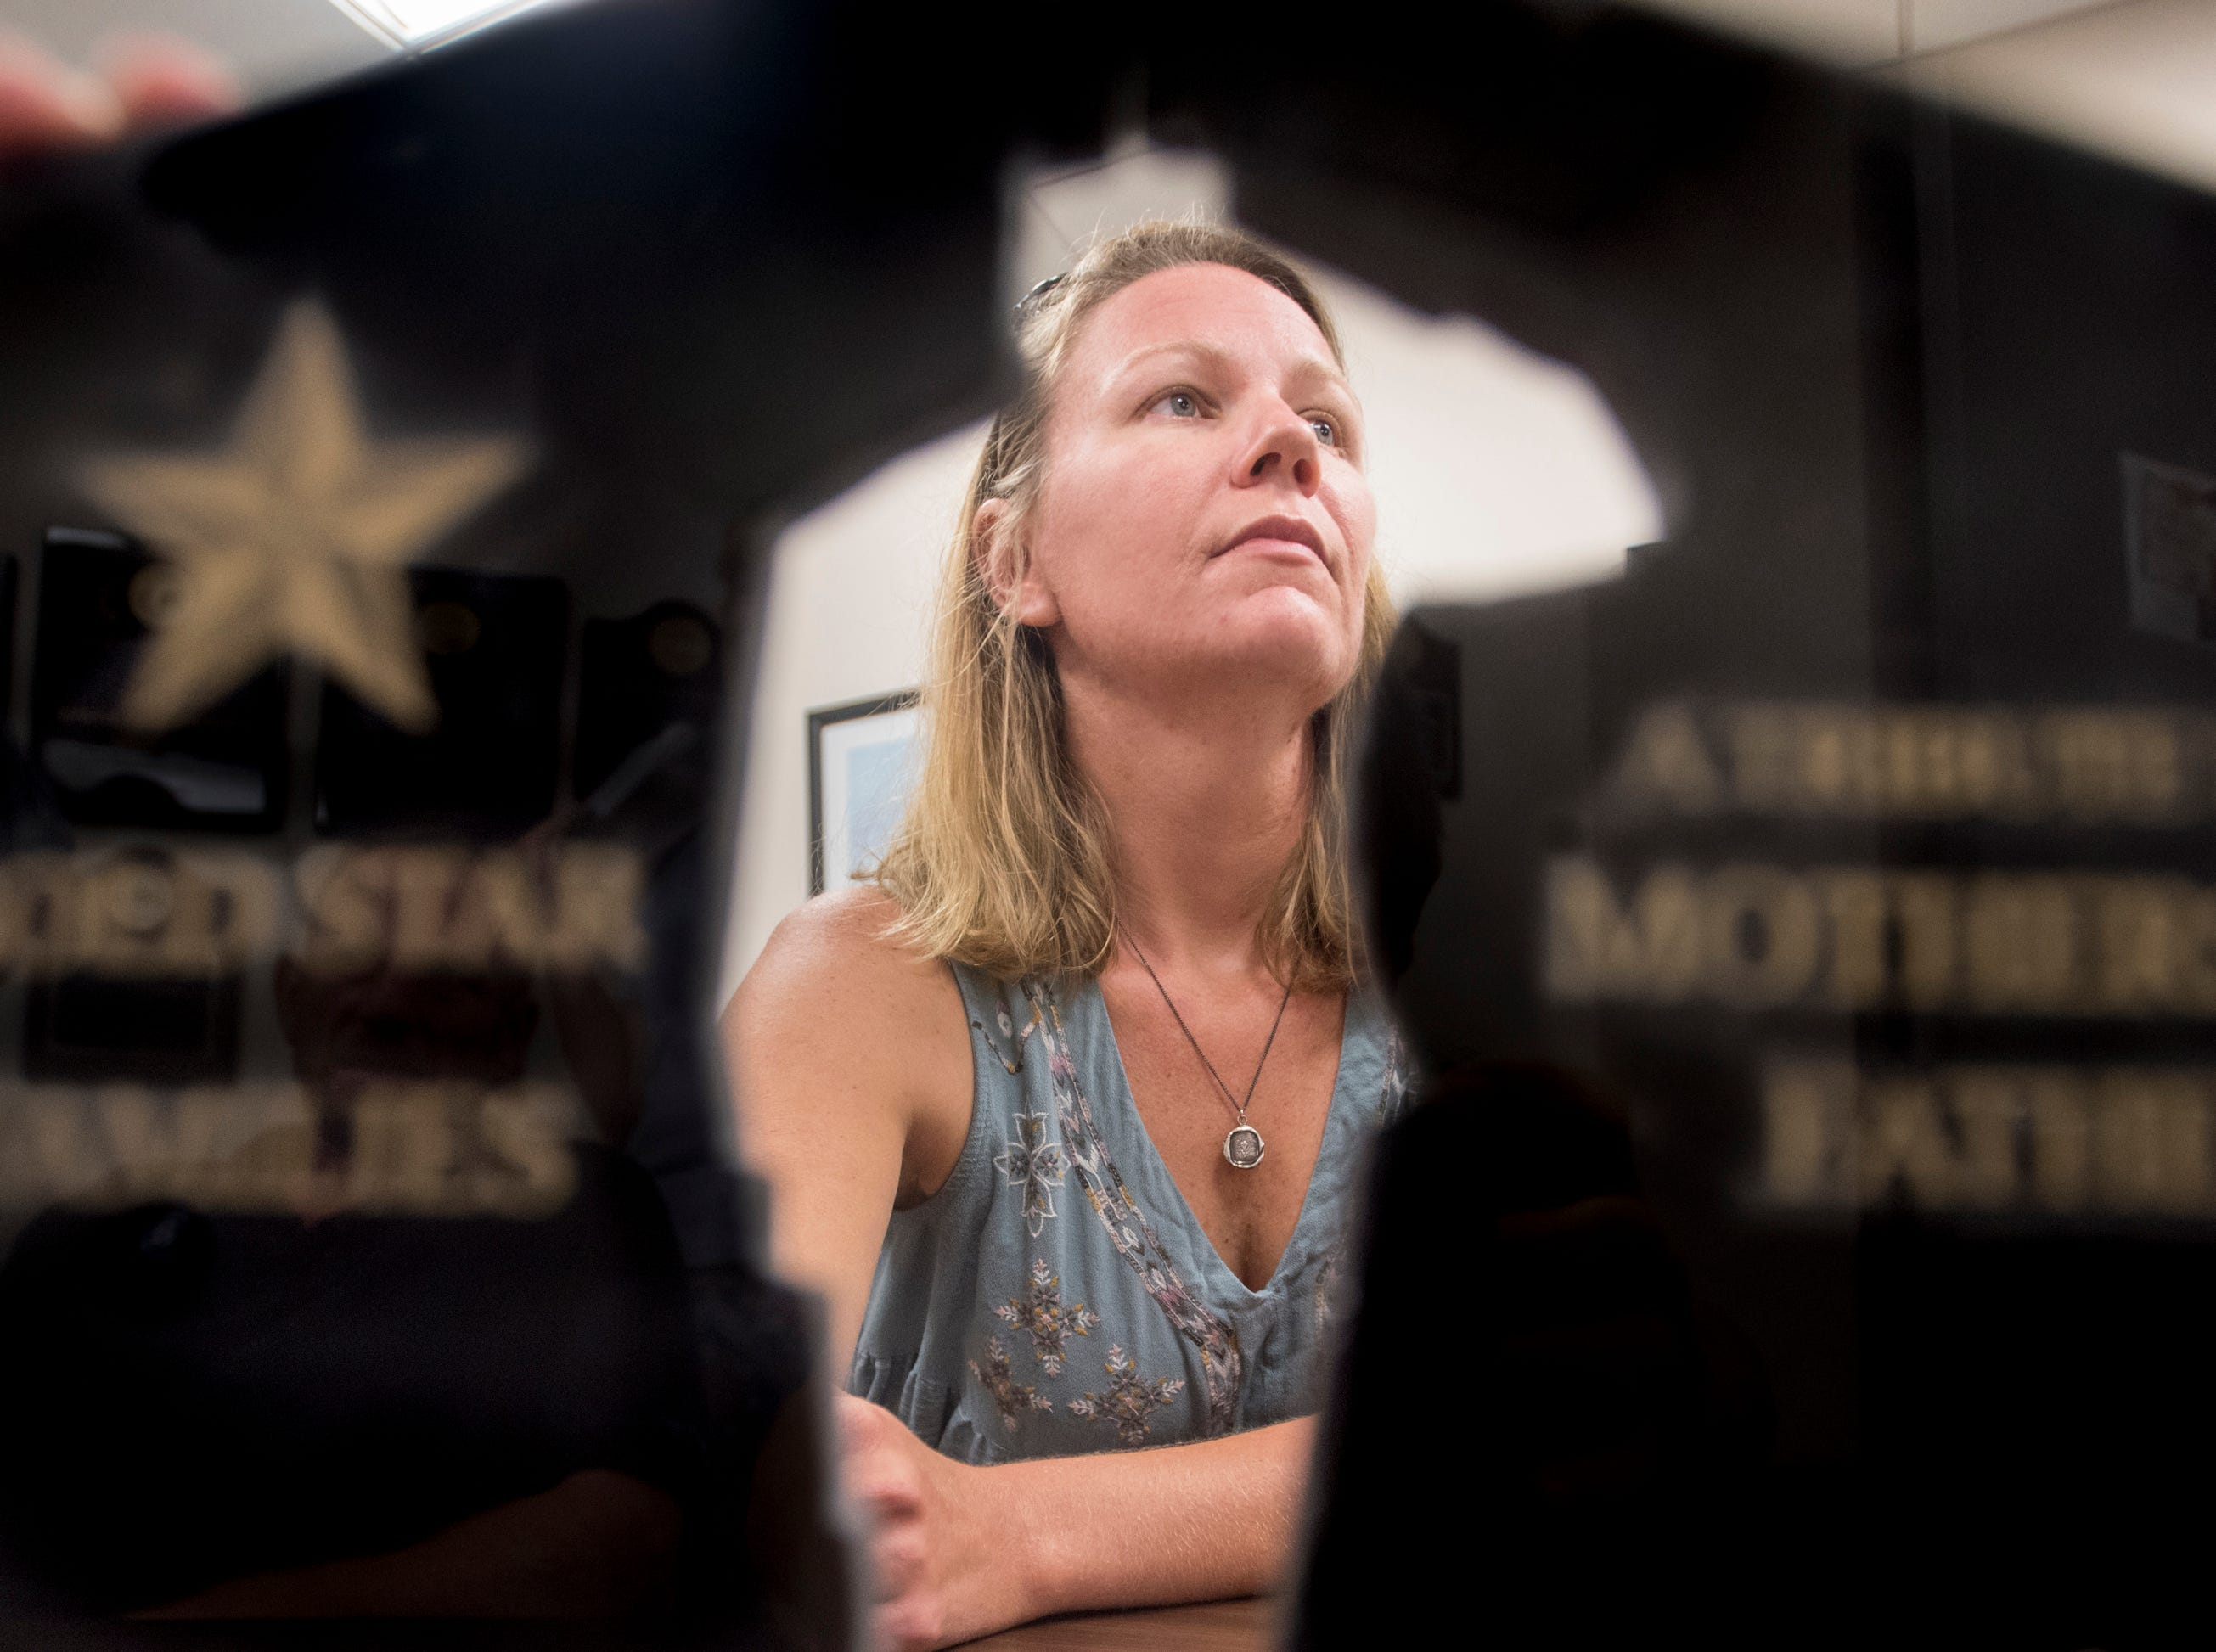 Gold Star monument planned for families who lost loved ones in military service